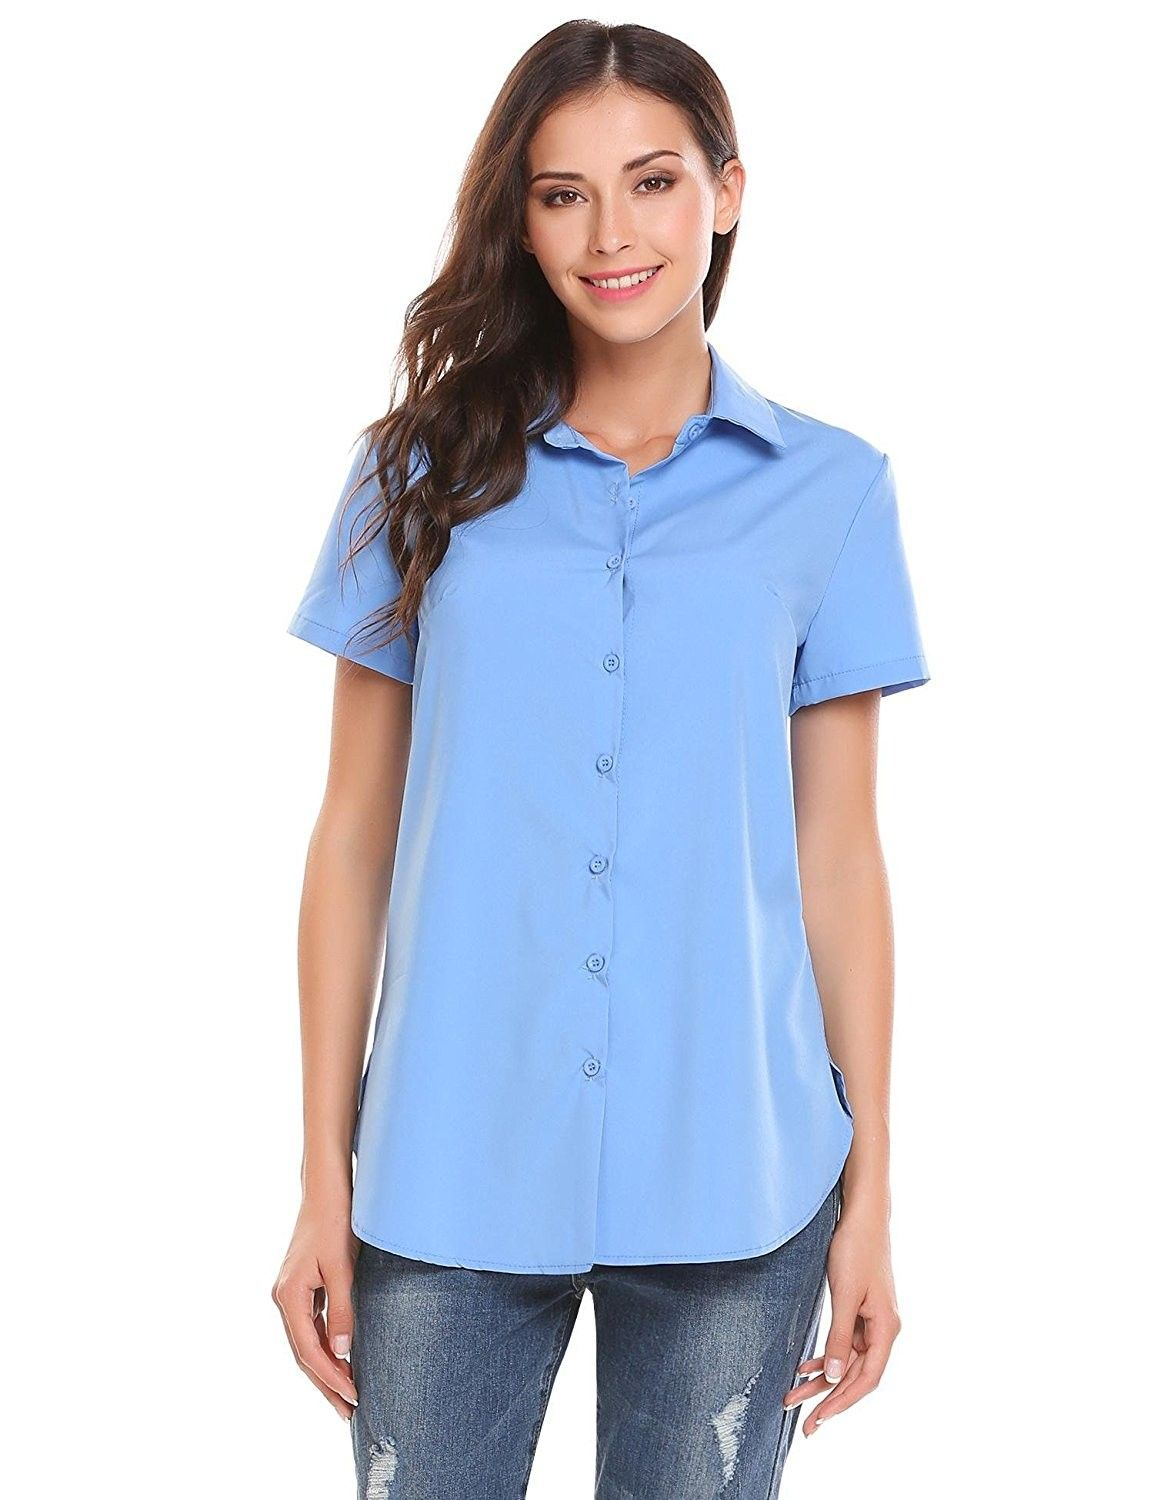 Women Short Sleeve Button-Down Shirt Basic Casual Tailored Blouse Tops -  Sky Blue - C9185W2D35Z | Tailored blouses, Fashion clothes women, Womens  shorts